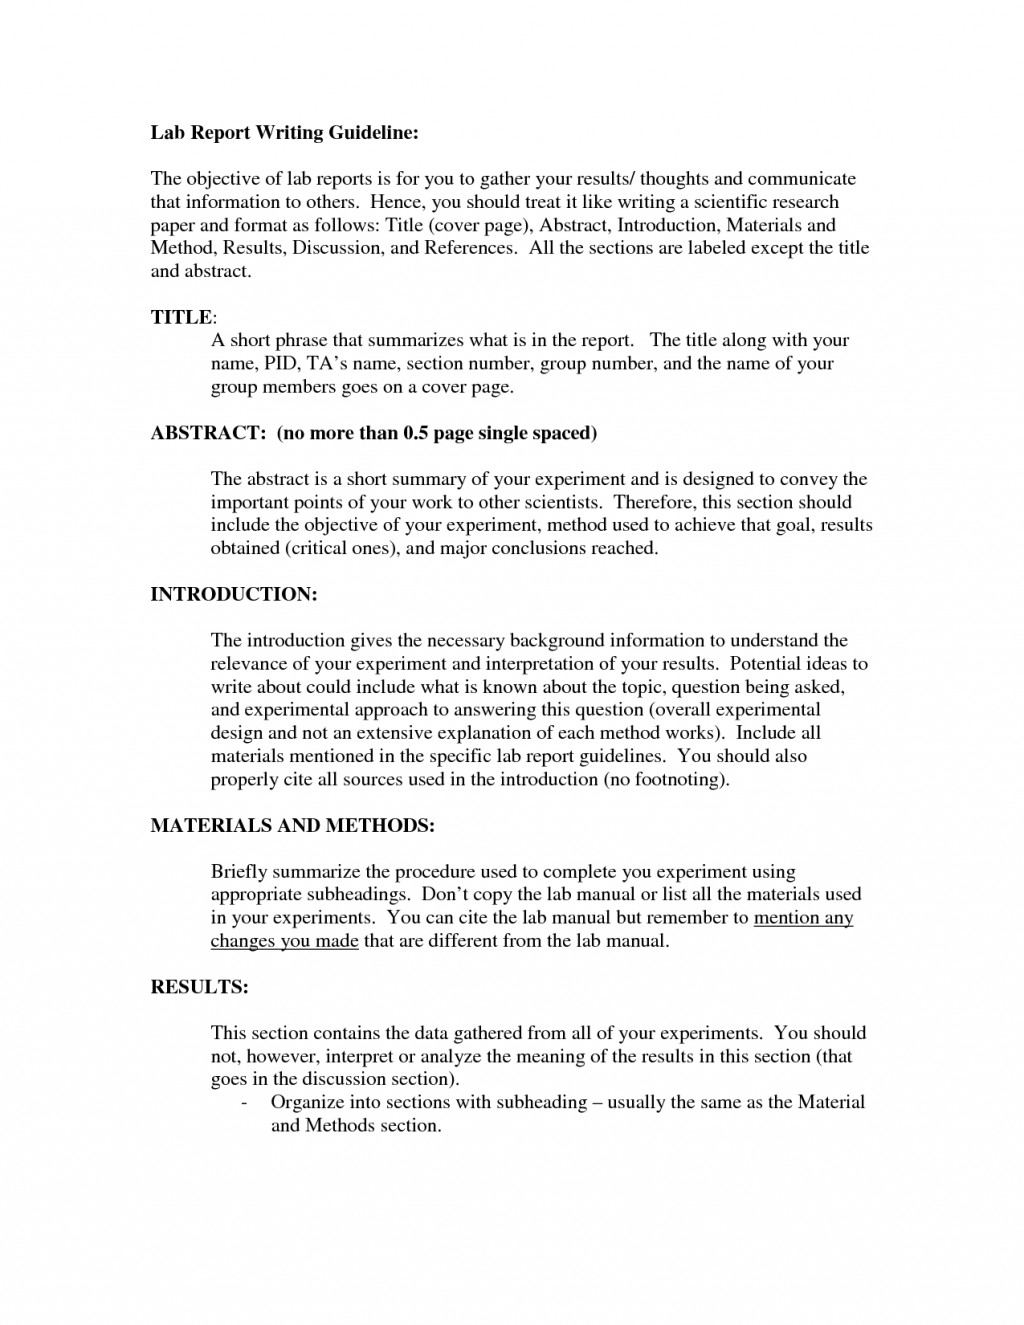 013 Dft1eehnlq How To Write Research Paper Methods Phenomenal A Section The Of Wallet Quantitative Large